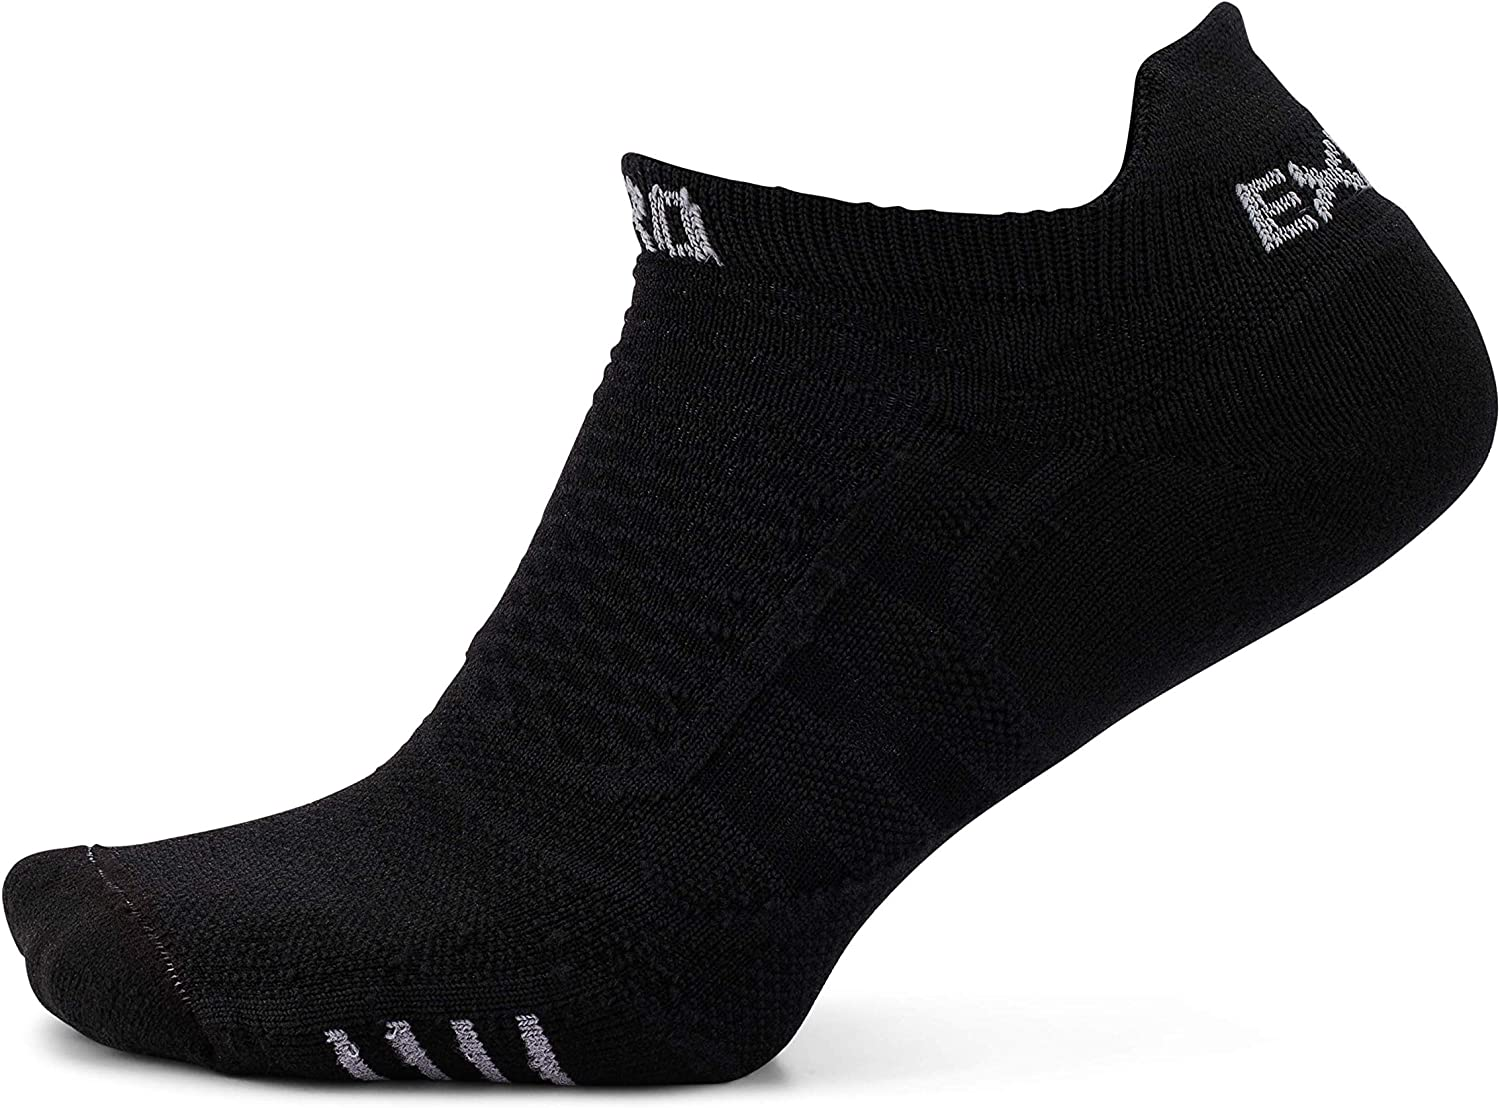 Thorlos Experia Unisex Prolite XPTU Running Ultra Thin No Show Tab Sock, Black/Black, Medium